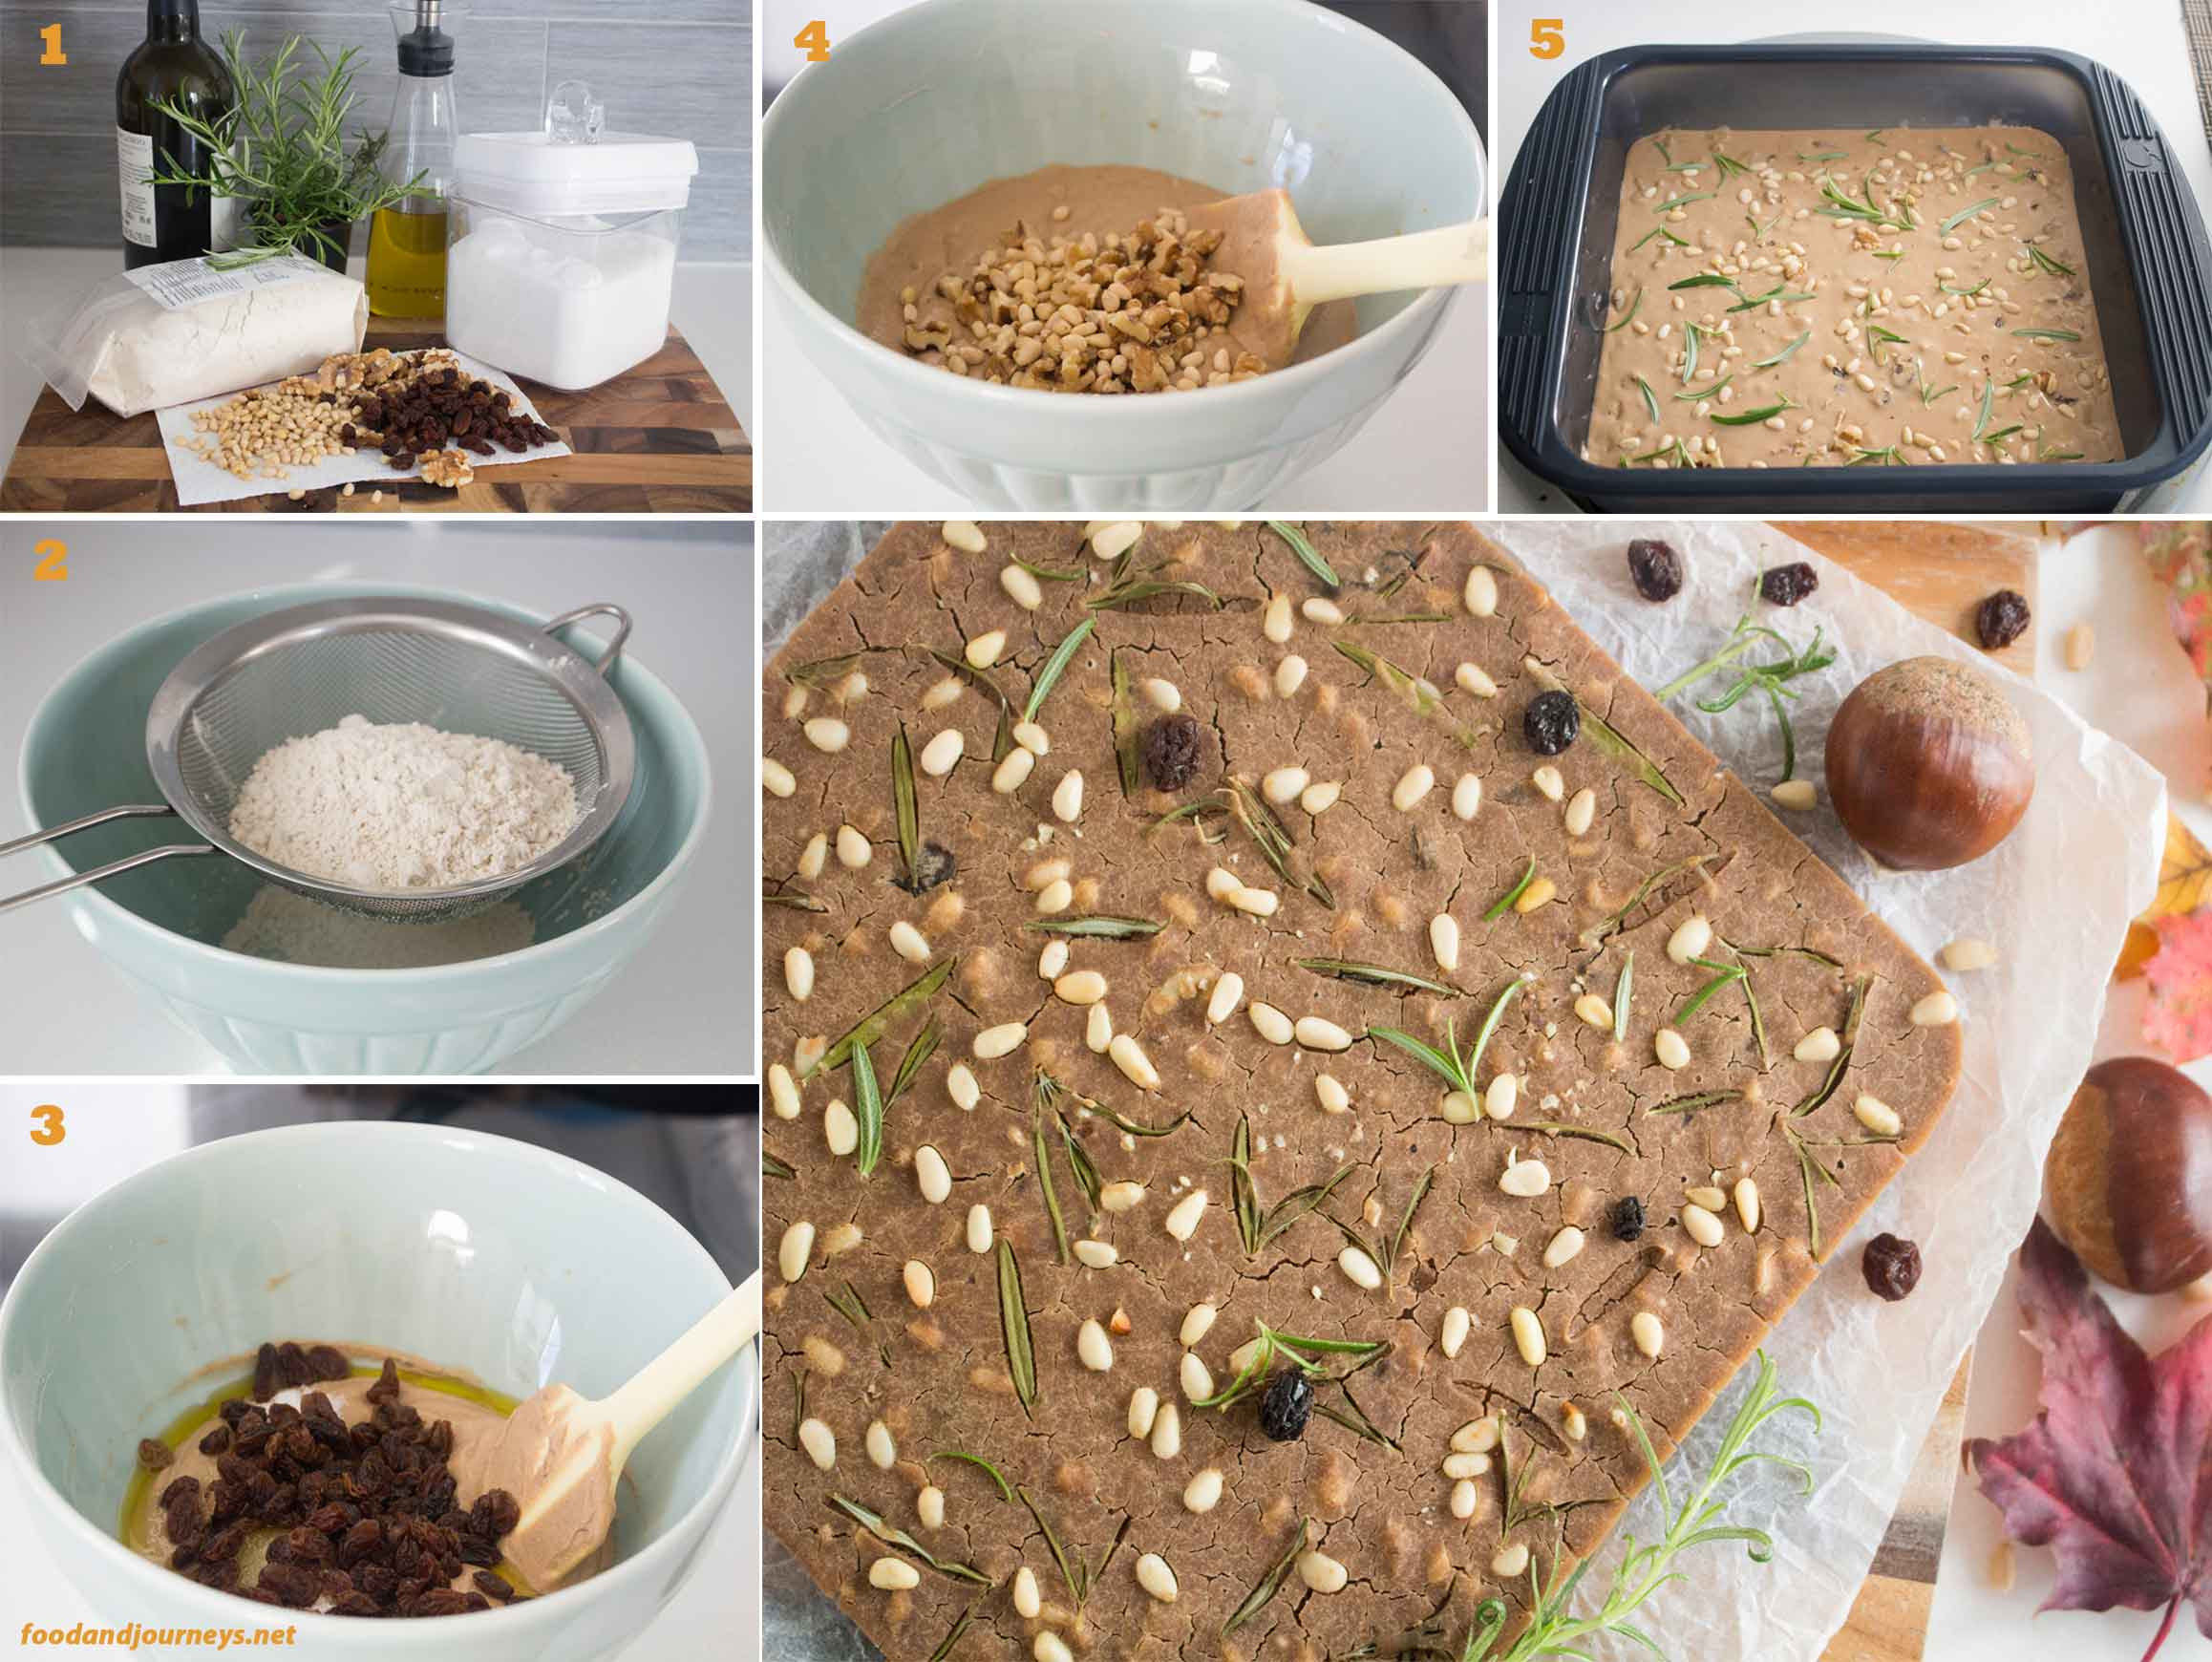 Collage of images showing the steps on making tuscan chestnut cake|foodandjourneys.net